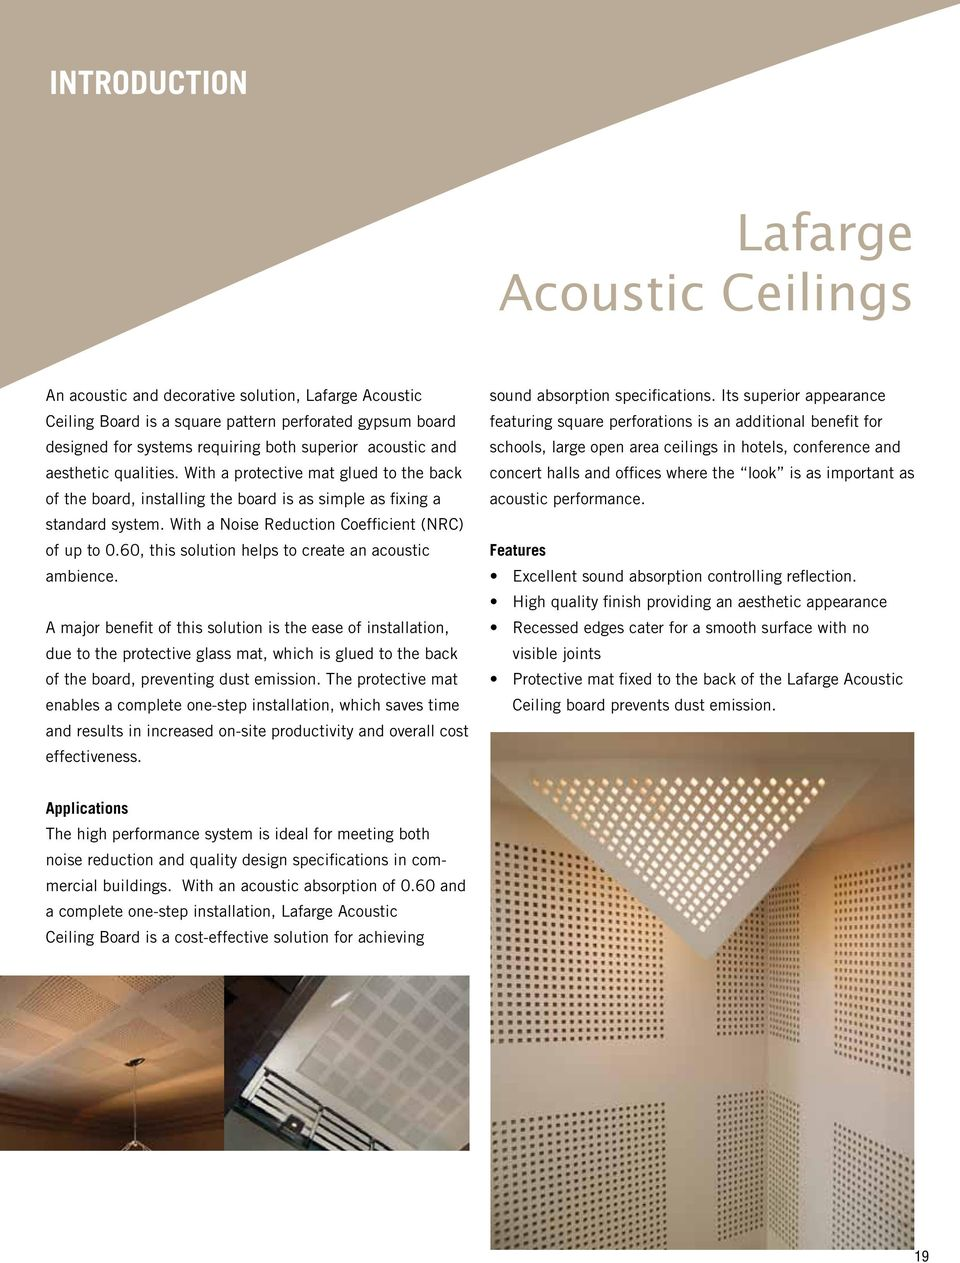 60 This Solution Helps To Create An Acoustic Ambience